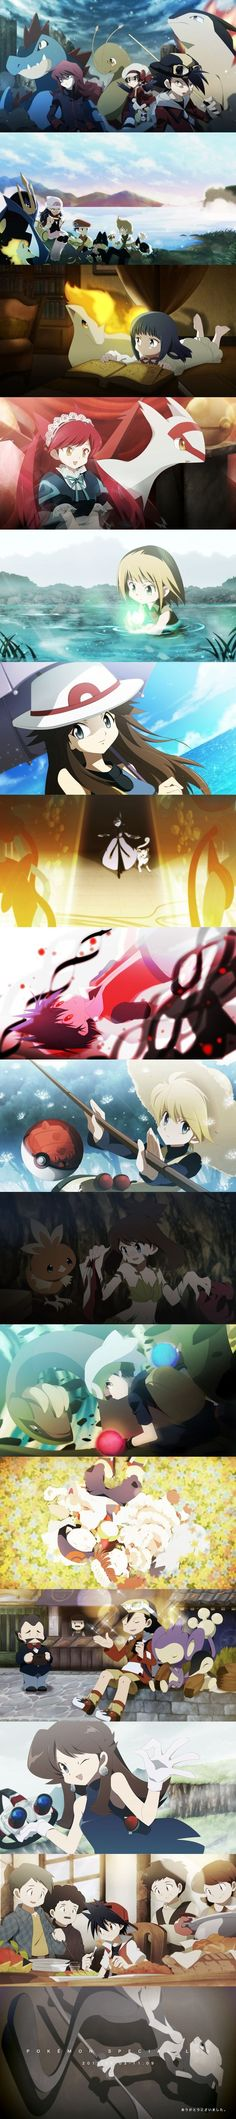 Pokémon SPECIAL/#1645672 - Zerochan THEY NEED TO MAKE THIS AN ANIME: